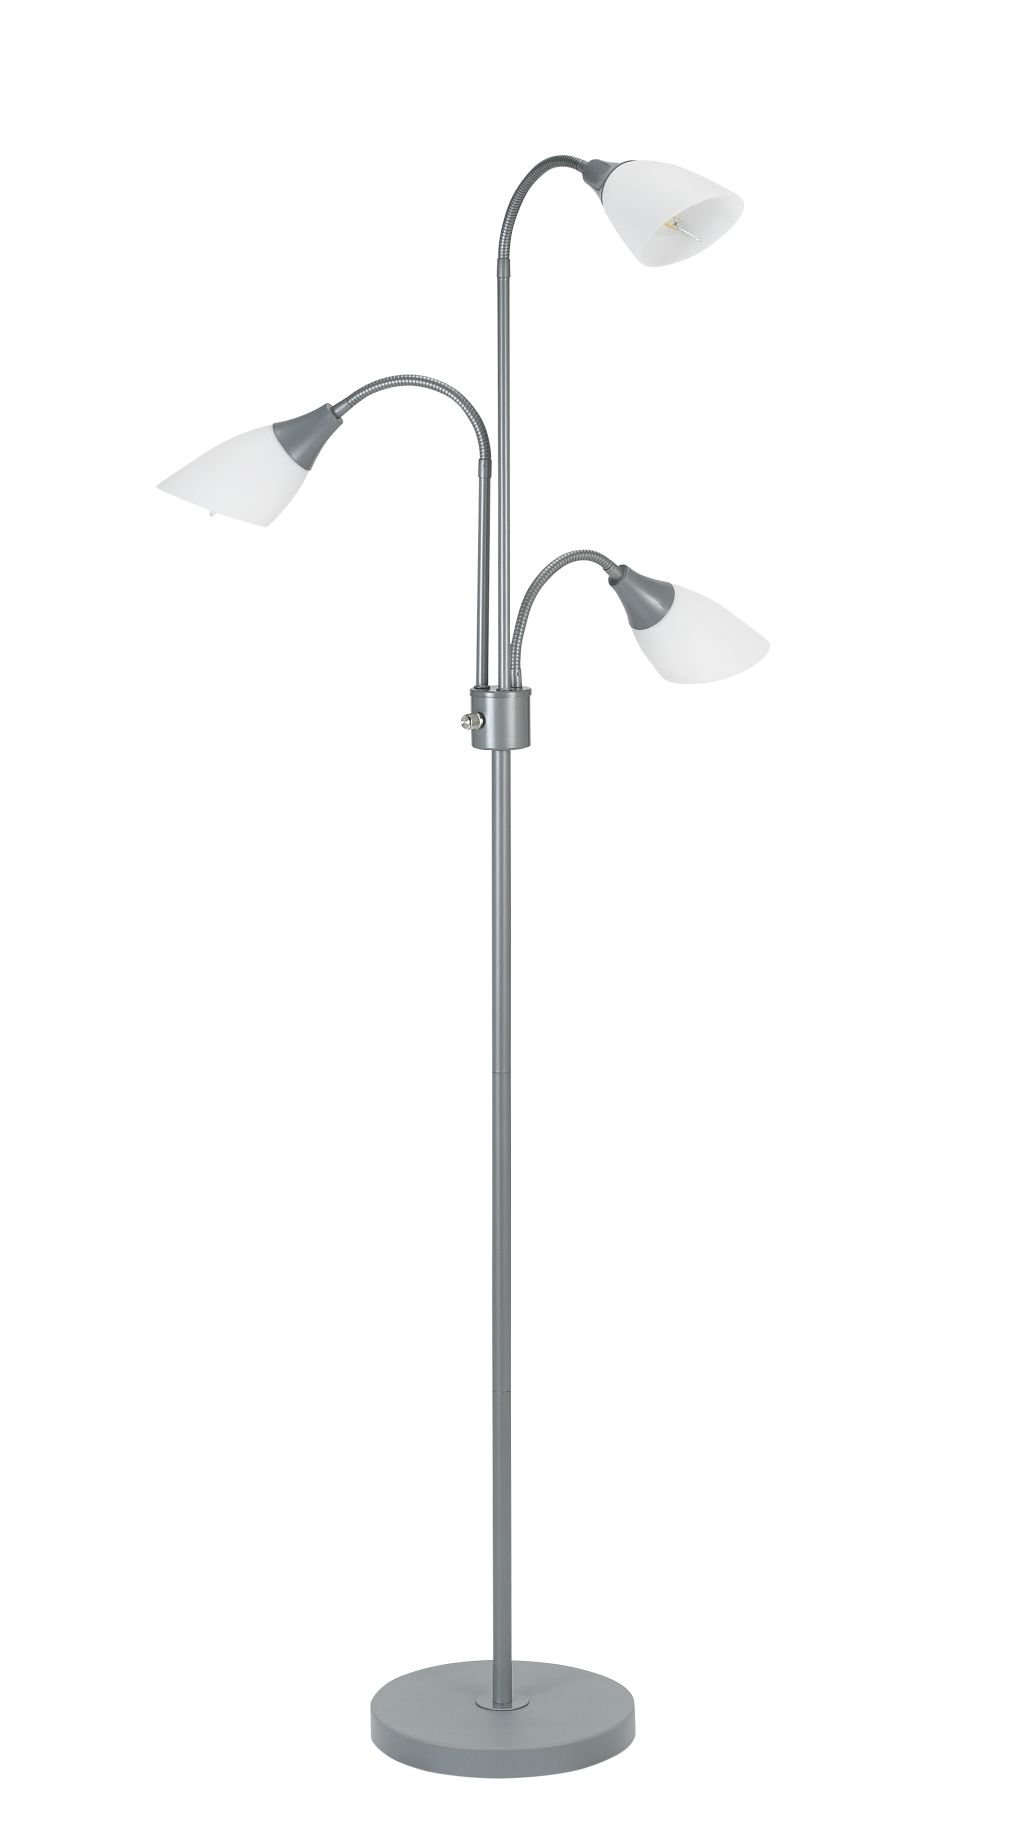 CDM product Catalina Lighting Medusa 3 Floor Lamp with Adjustable Lights, Silver Base with White Shades, 20743-000 big image